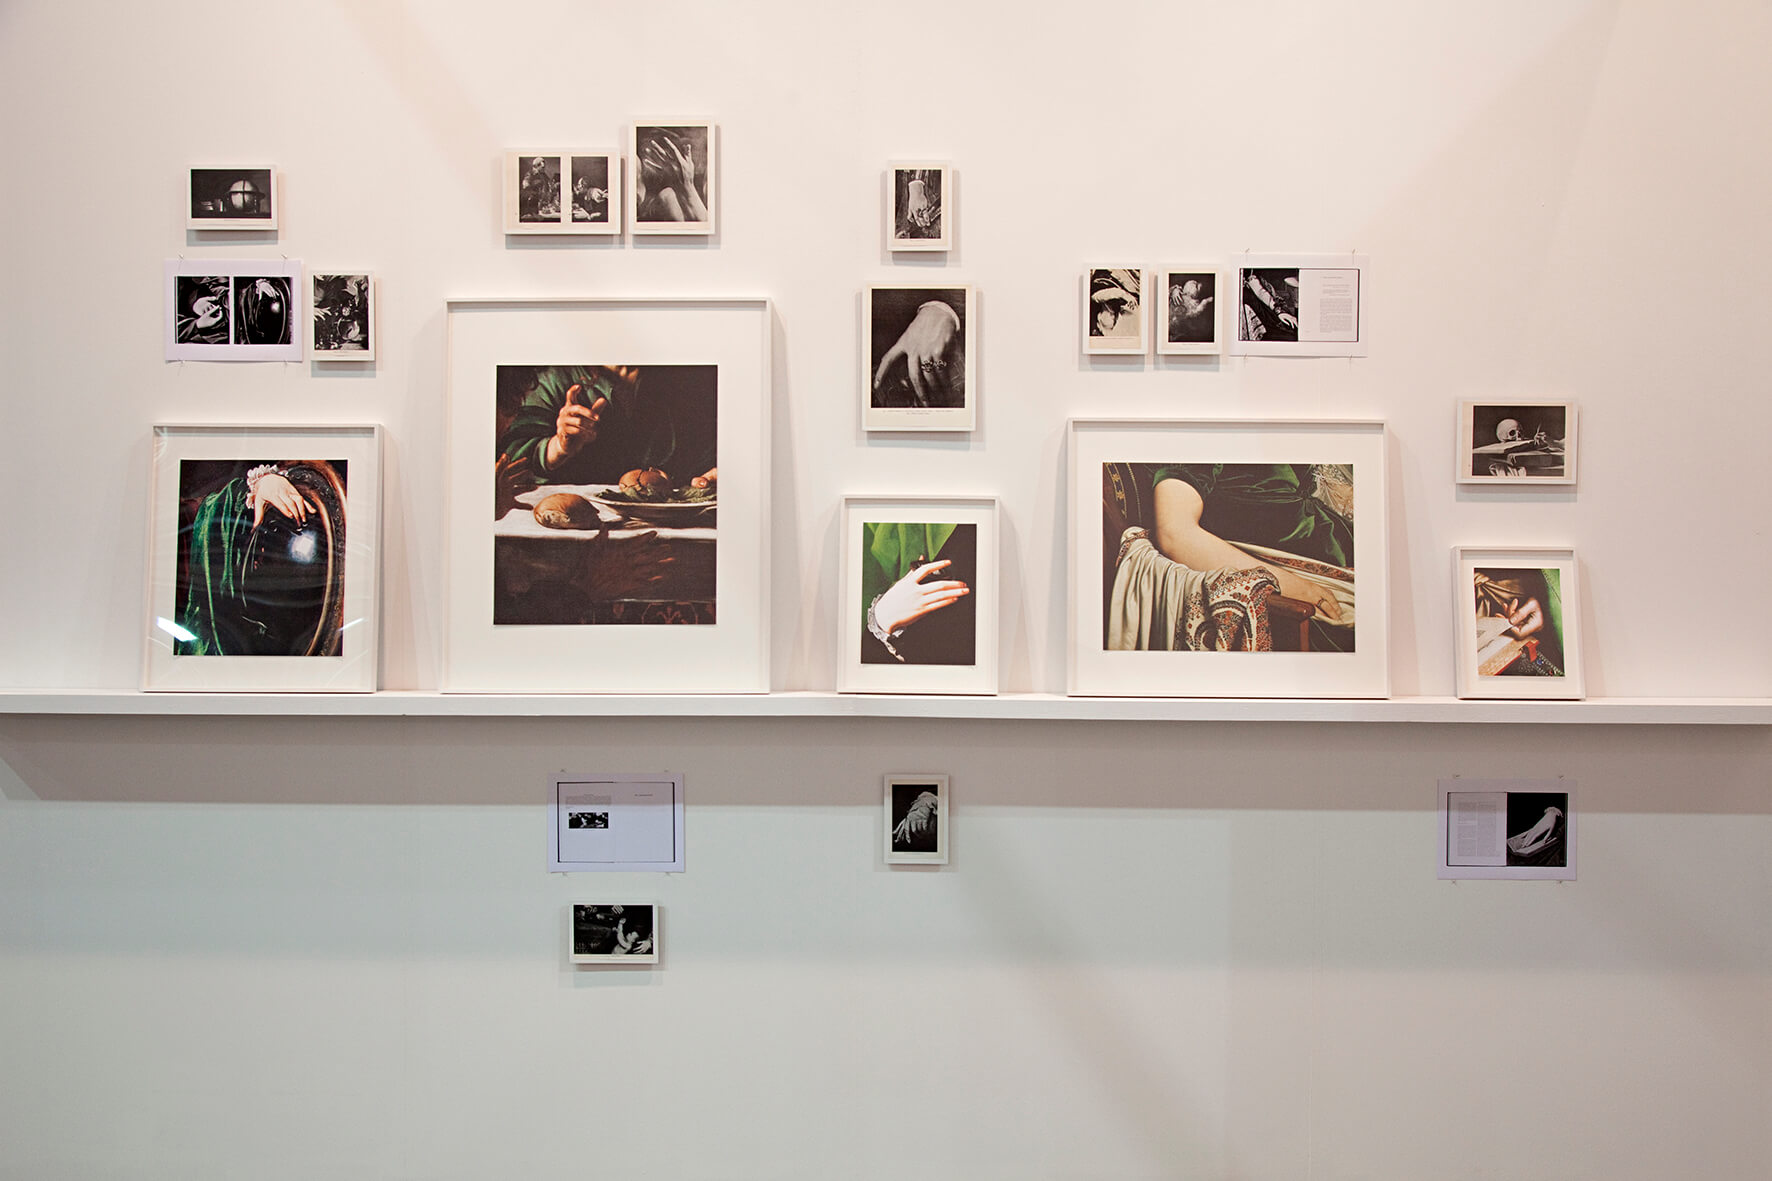 Installation view: ProjecteSD. Hall Violet Nº3 / Hall Green Nº4 | ARTISSIMA 2014 | ProjecteSD